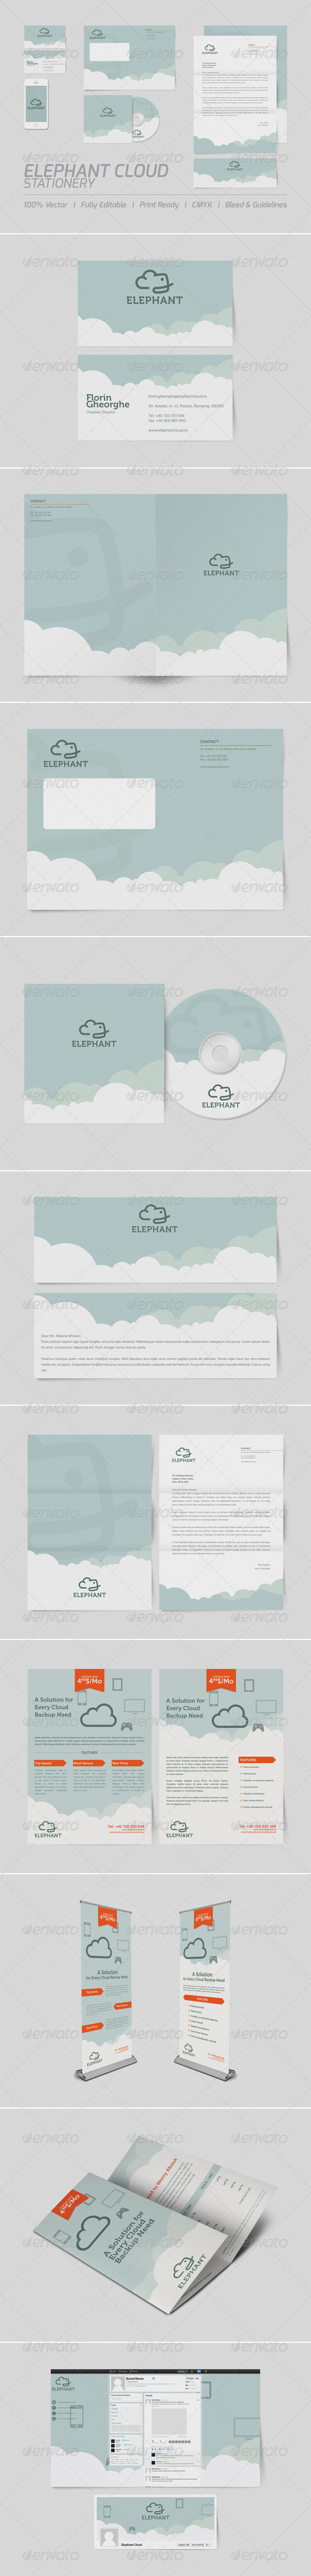 GraphicRiver Elephant Cloud Stationery 3666940